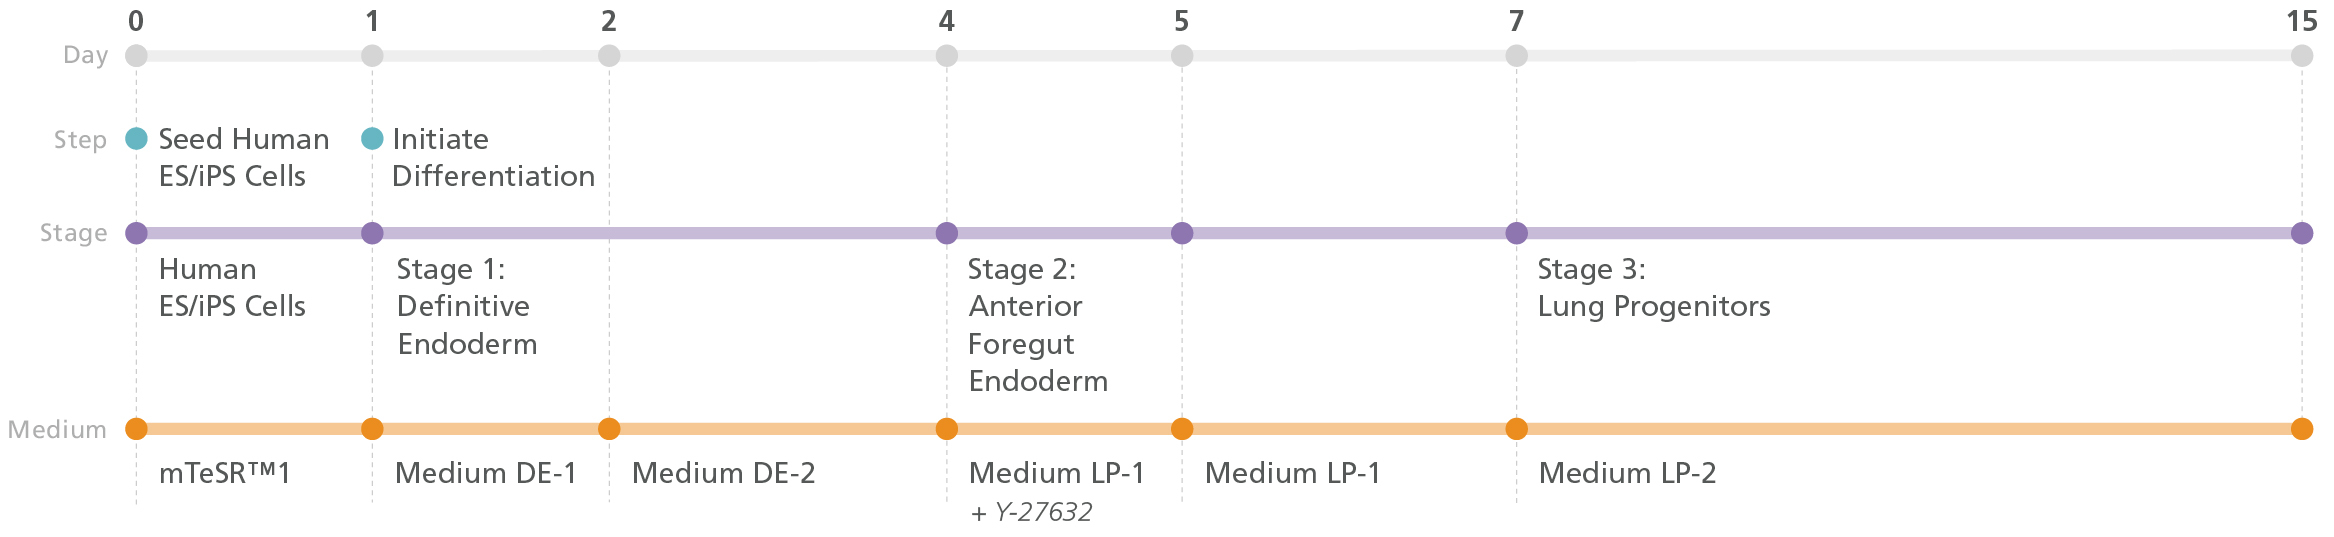 Illustration showing the protocol, media, and three stages (definitive endoderm, anterior foregut endoderm, and lung progenitors) invoved in the differentiation of human PSCs into lung progenitor cells using the STEMdiff™ Lung Progenitor Kit.